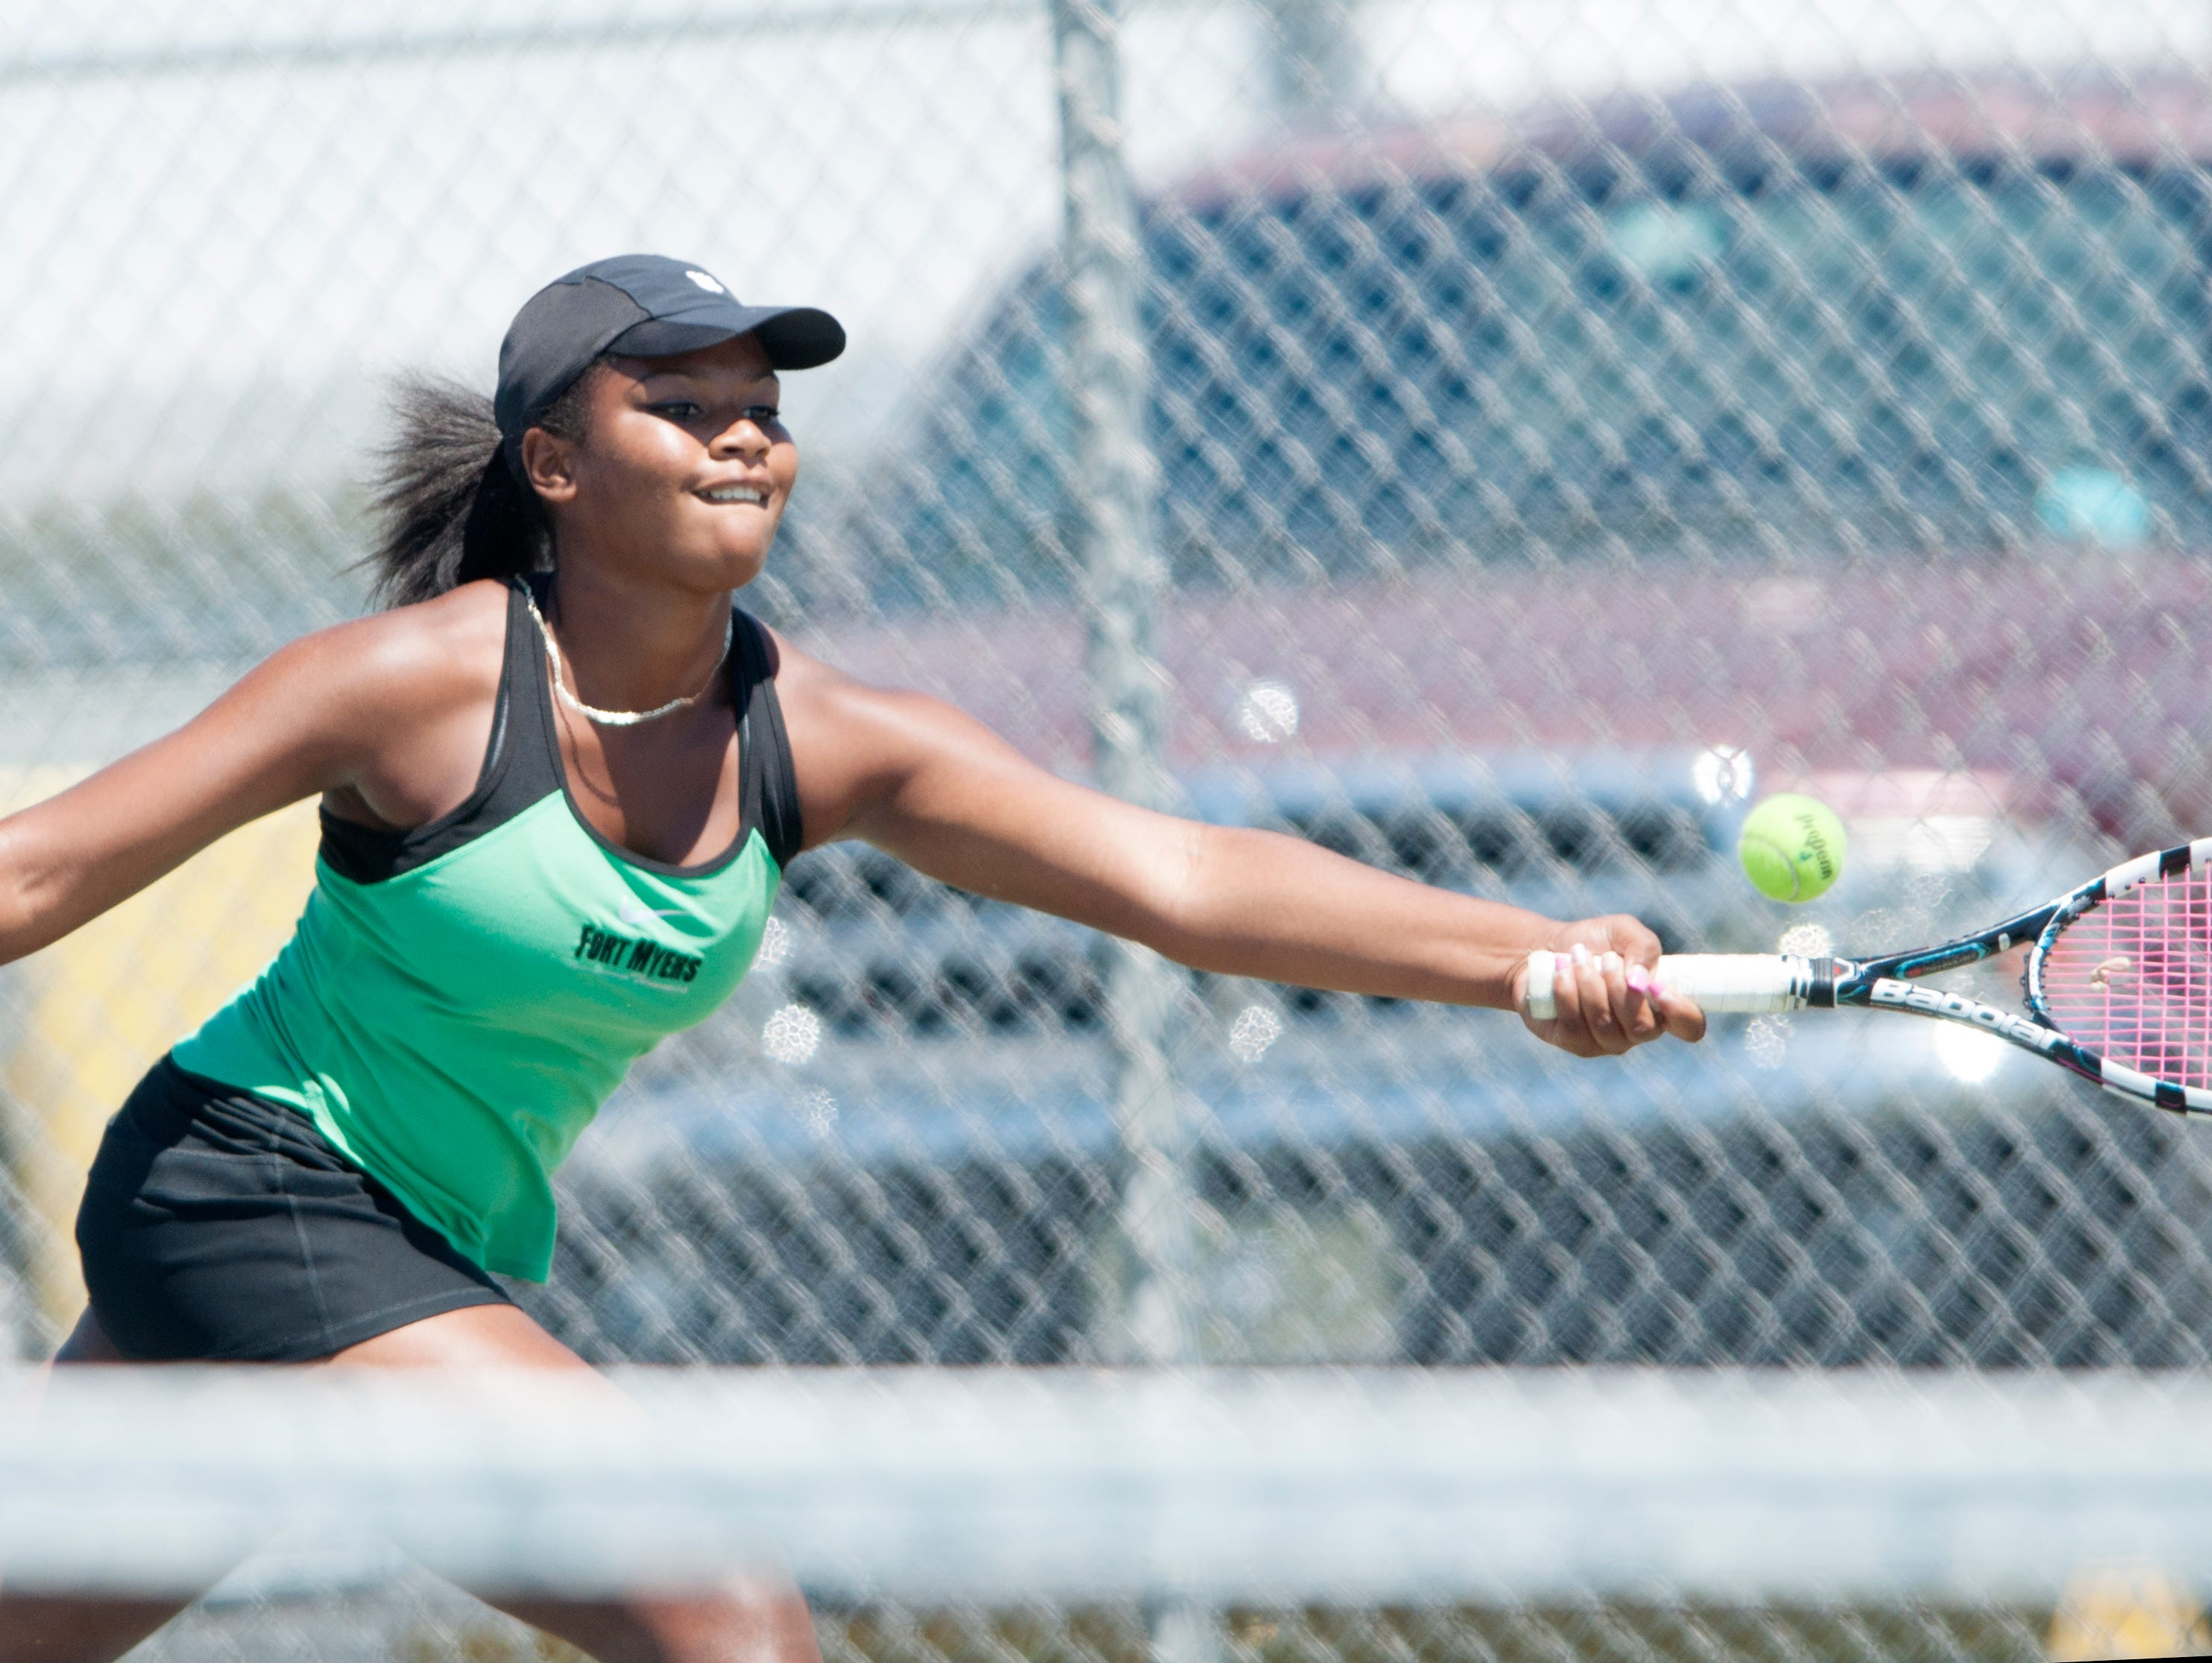 Shani Idlette, of the Fort Myers High School tennis team, makes a return while competing against Barron Collier's Amand Ruci during the Region 3A-3 girls tennis regional semifinal on Tuesday.